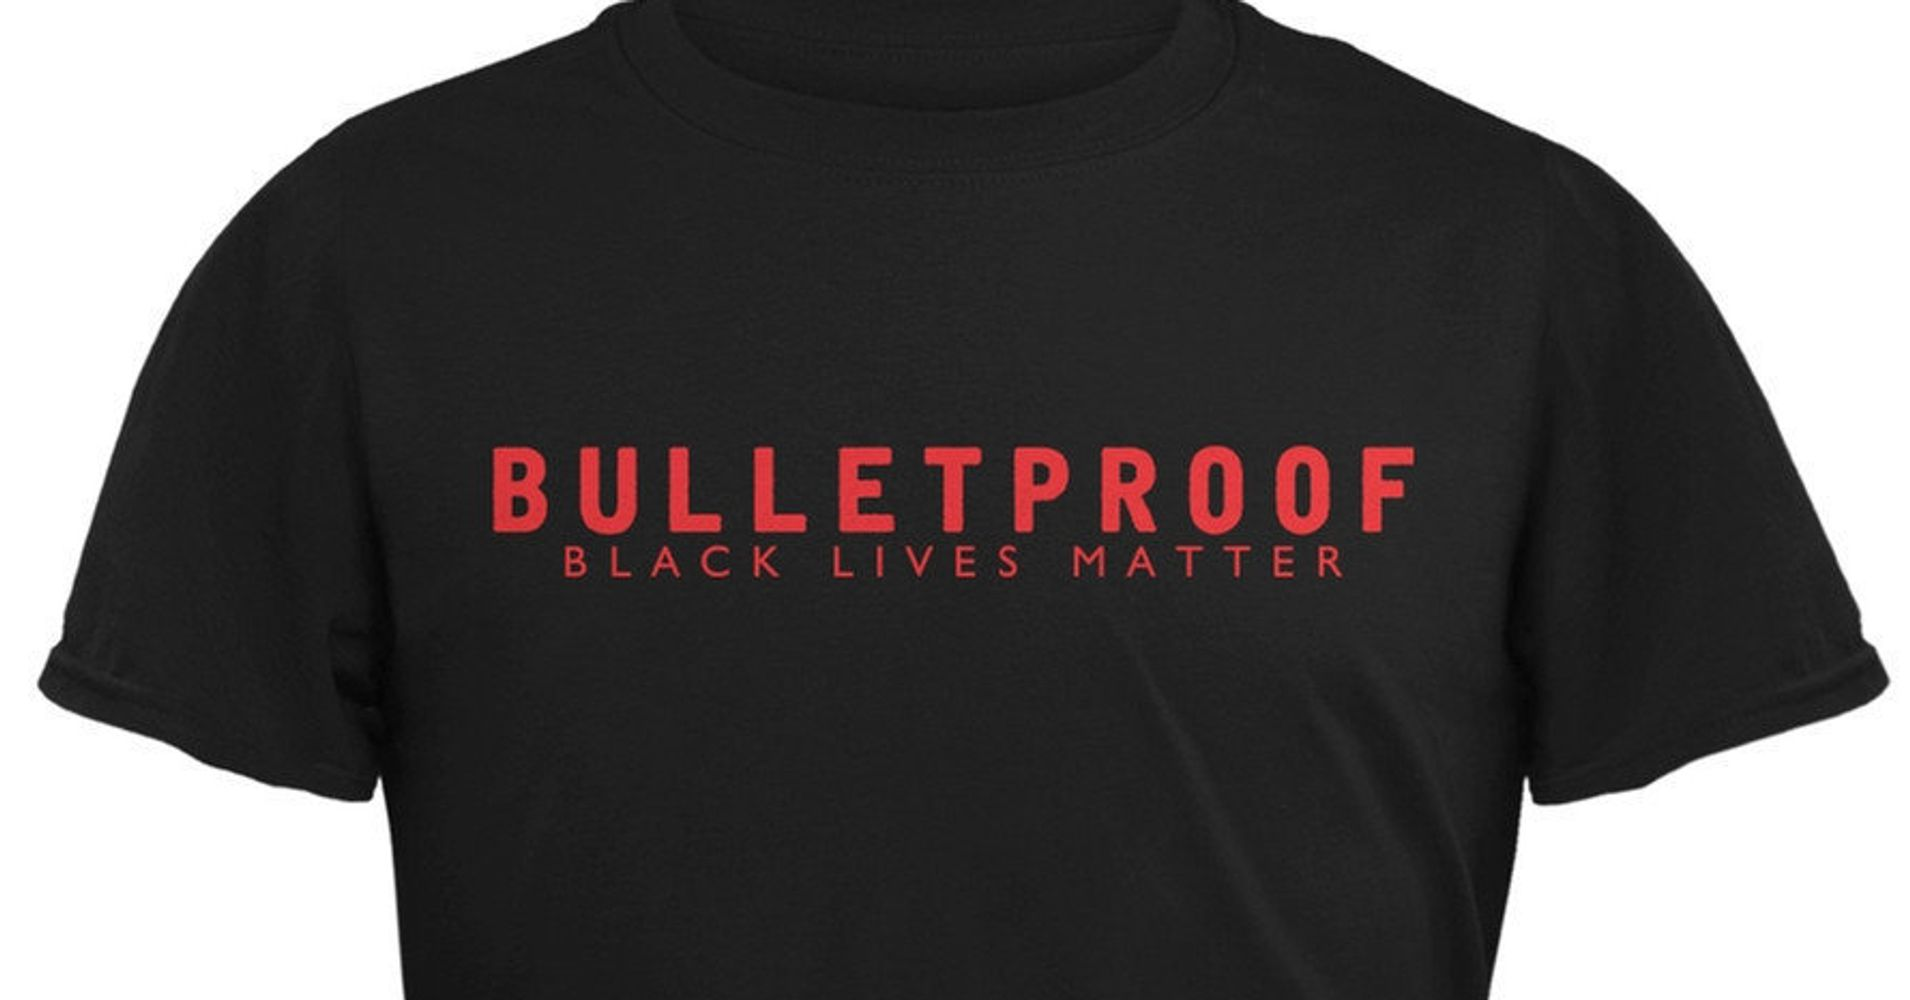 T shirt black is my happy color - Walmart Ditches Bulletproof Black Lives Matter T Shirt After Police Protest Huffpost